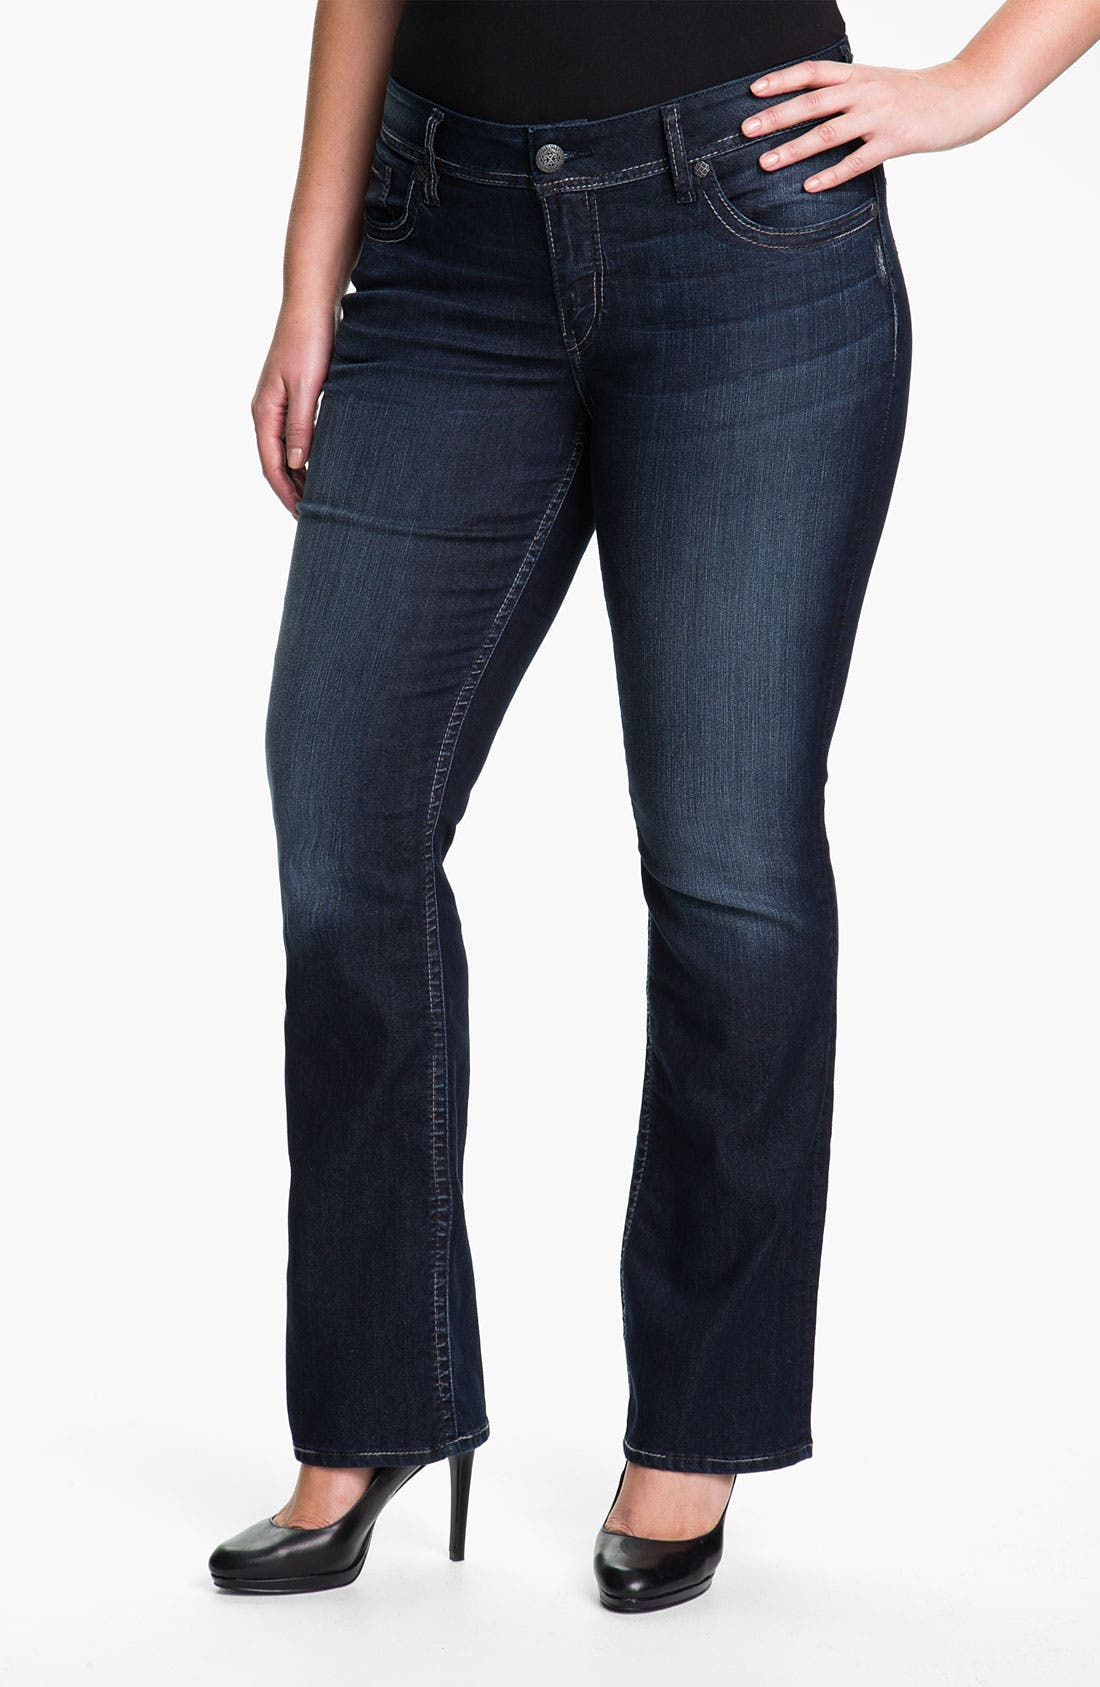 Alternate Image 1 Selected - Silver Jeans Co. 'Baby Boot' Bootcut Jeans (Juniors Plus)